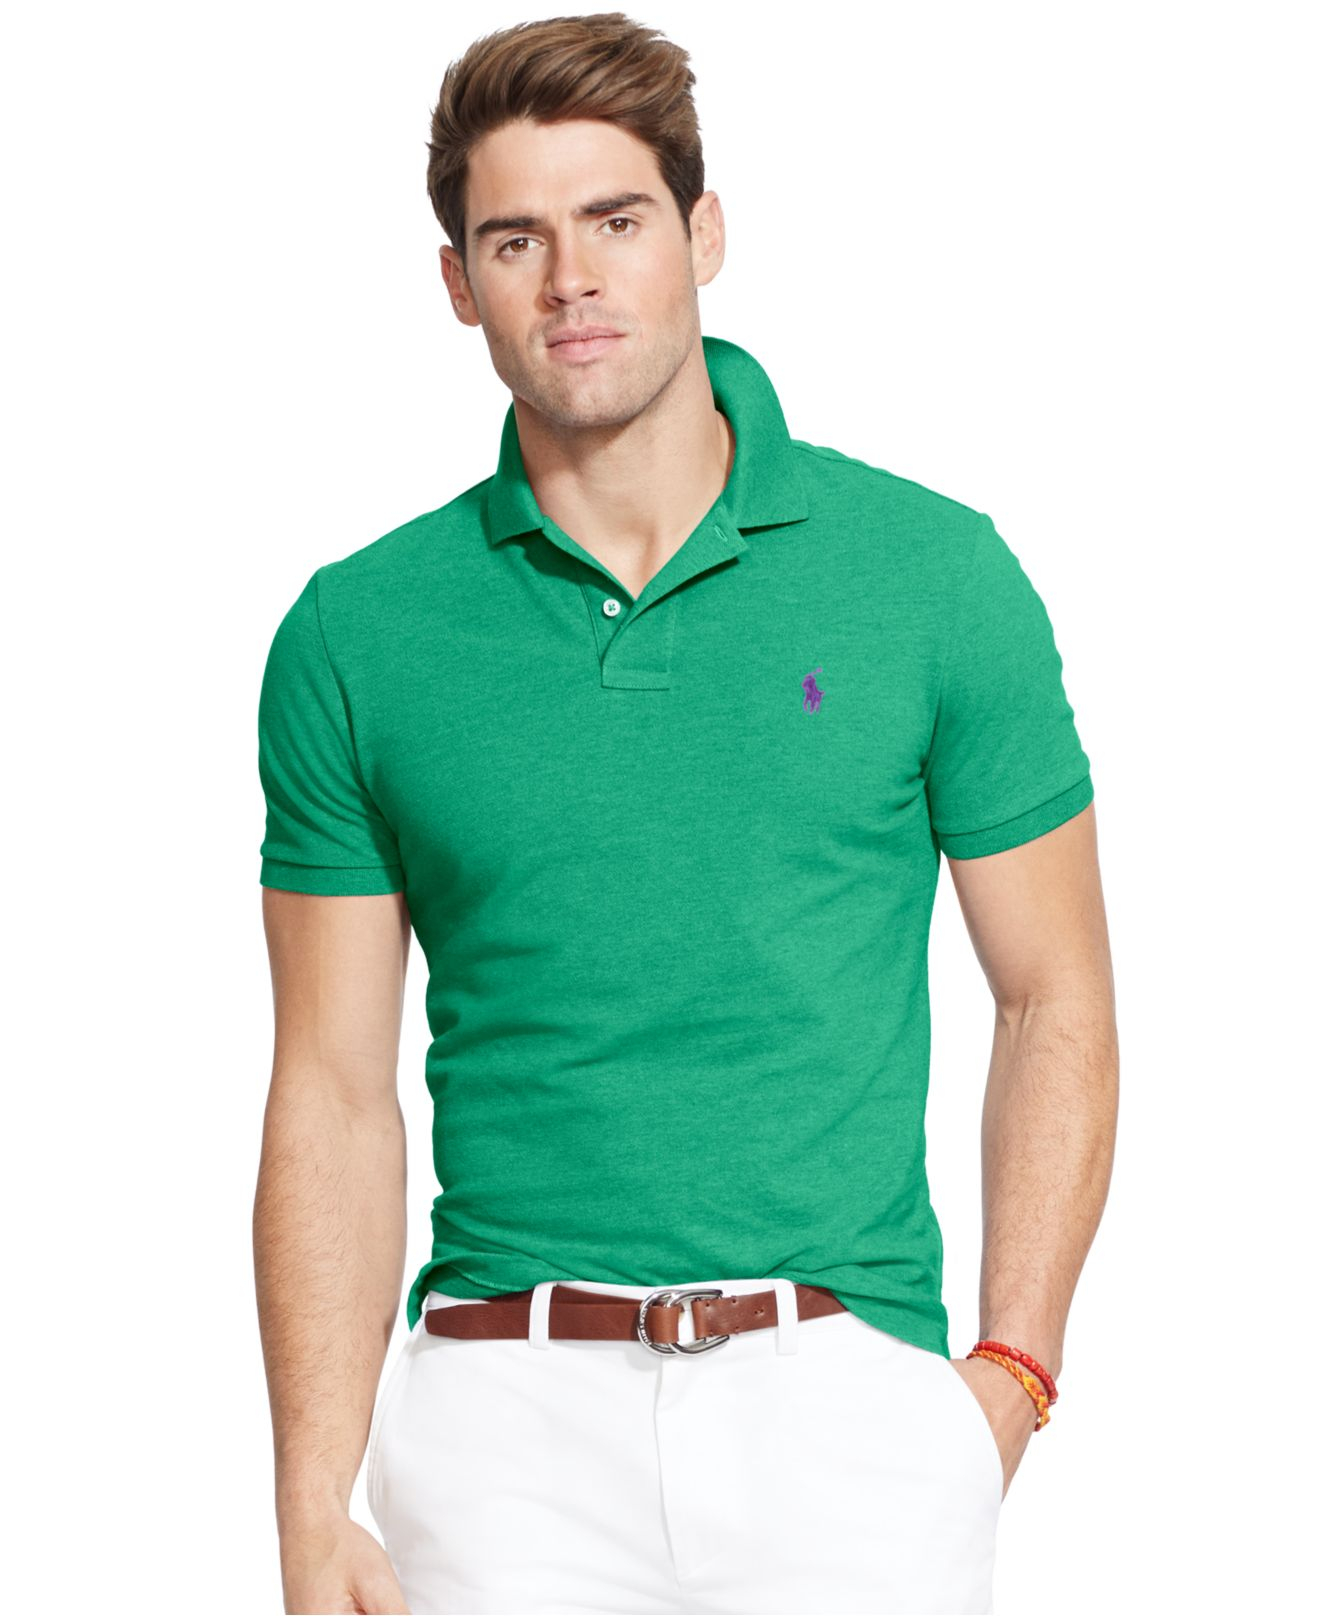 Polo ralph lauren custom fit mesh polo shirt in green for Man in polo shirt